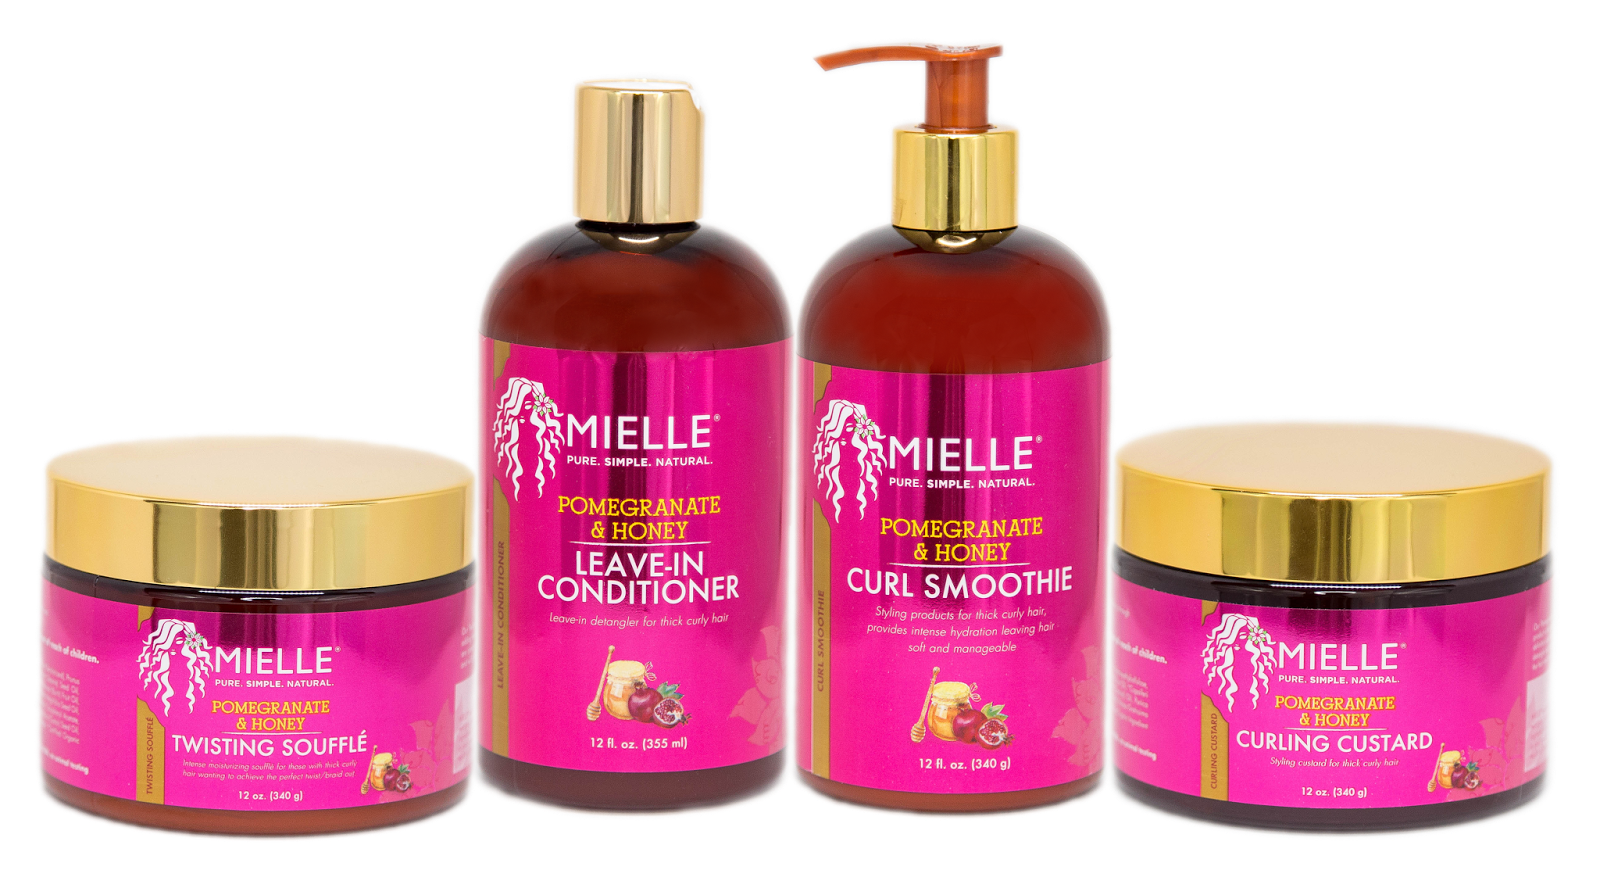 Subscribe To The CurlyNikki Newsletter For A Chance To Win A Mielle Organics Hair Care Bundle!